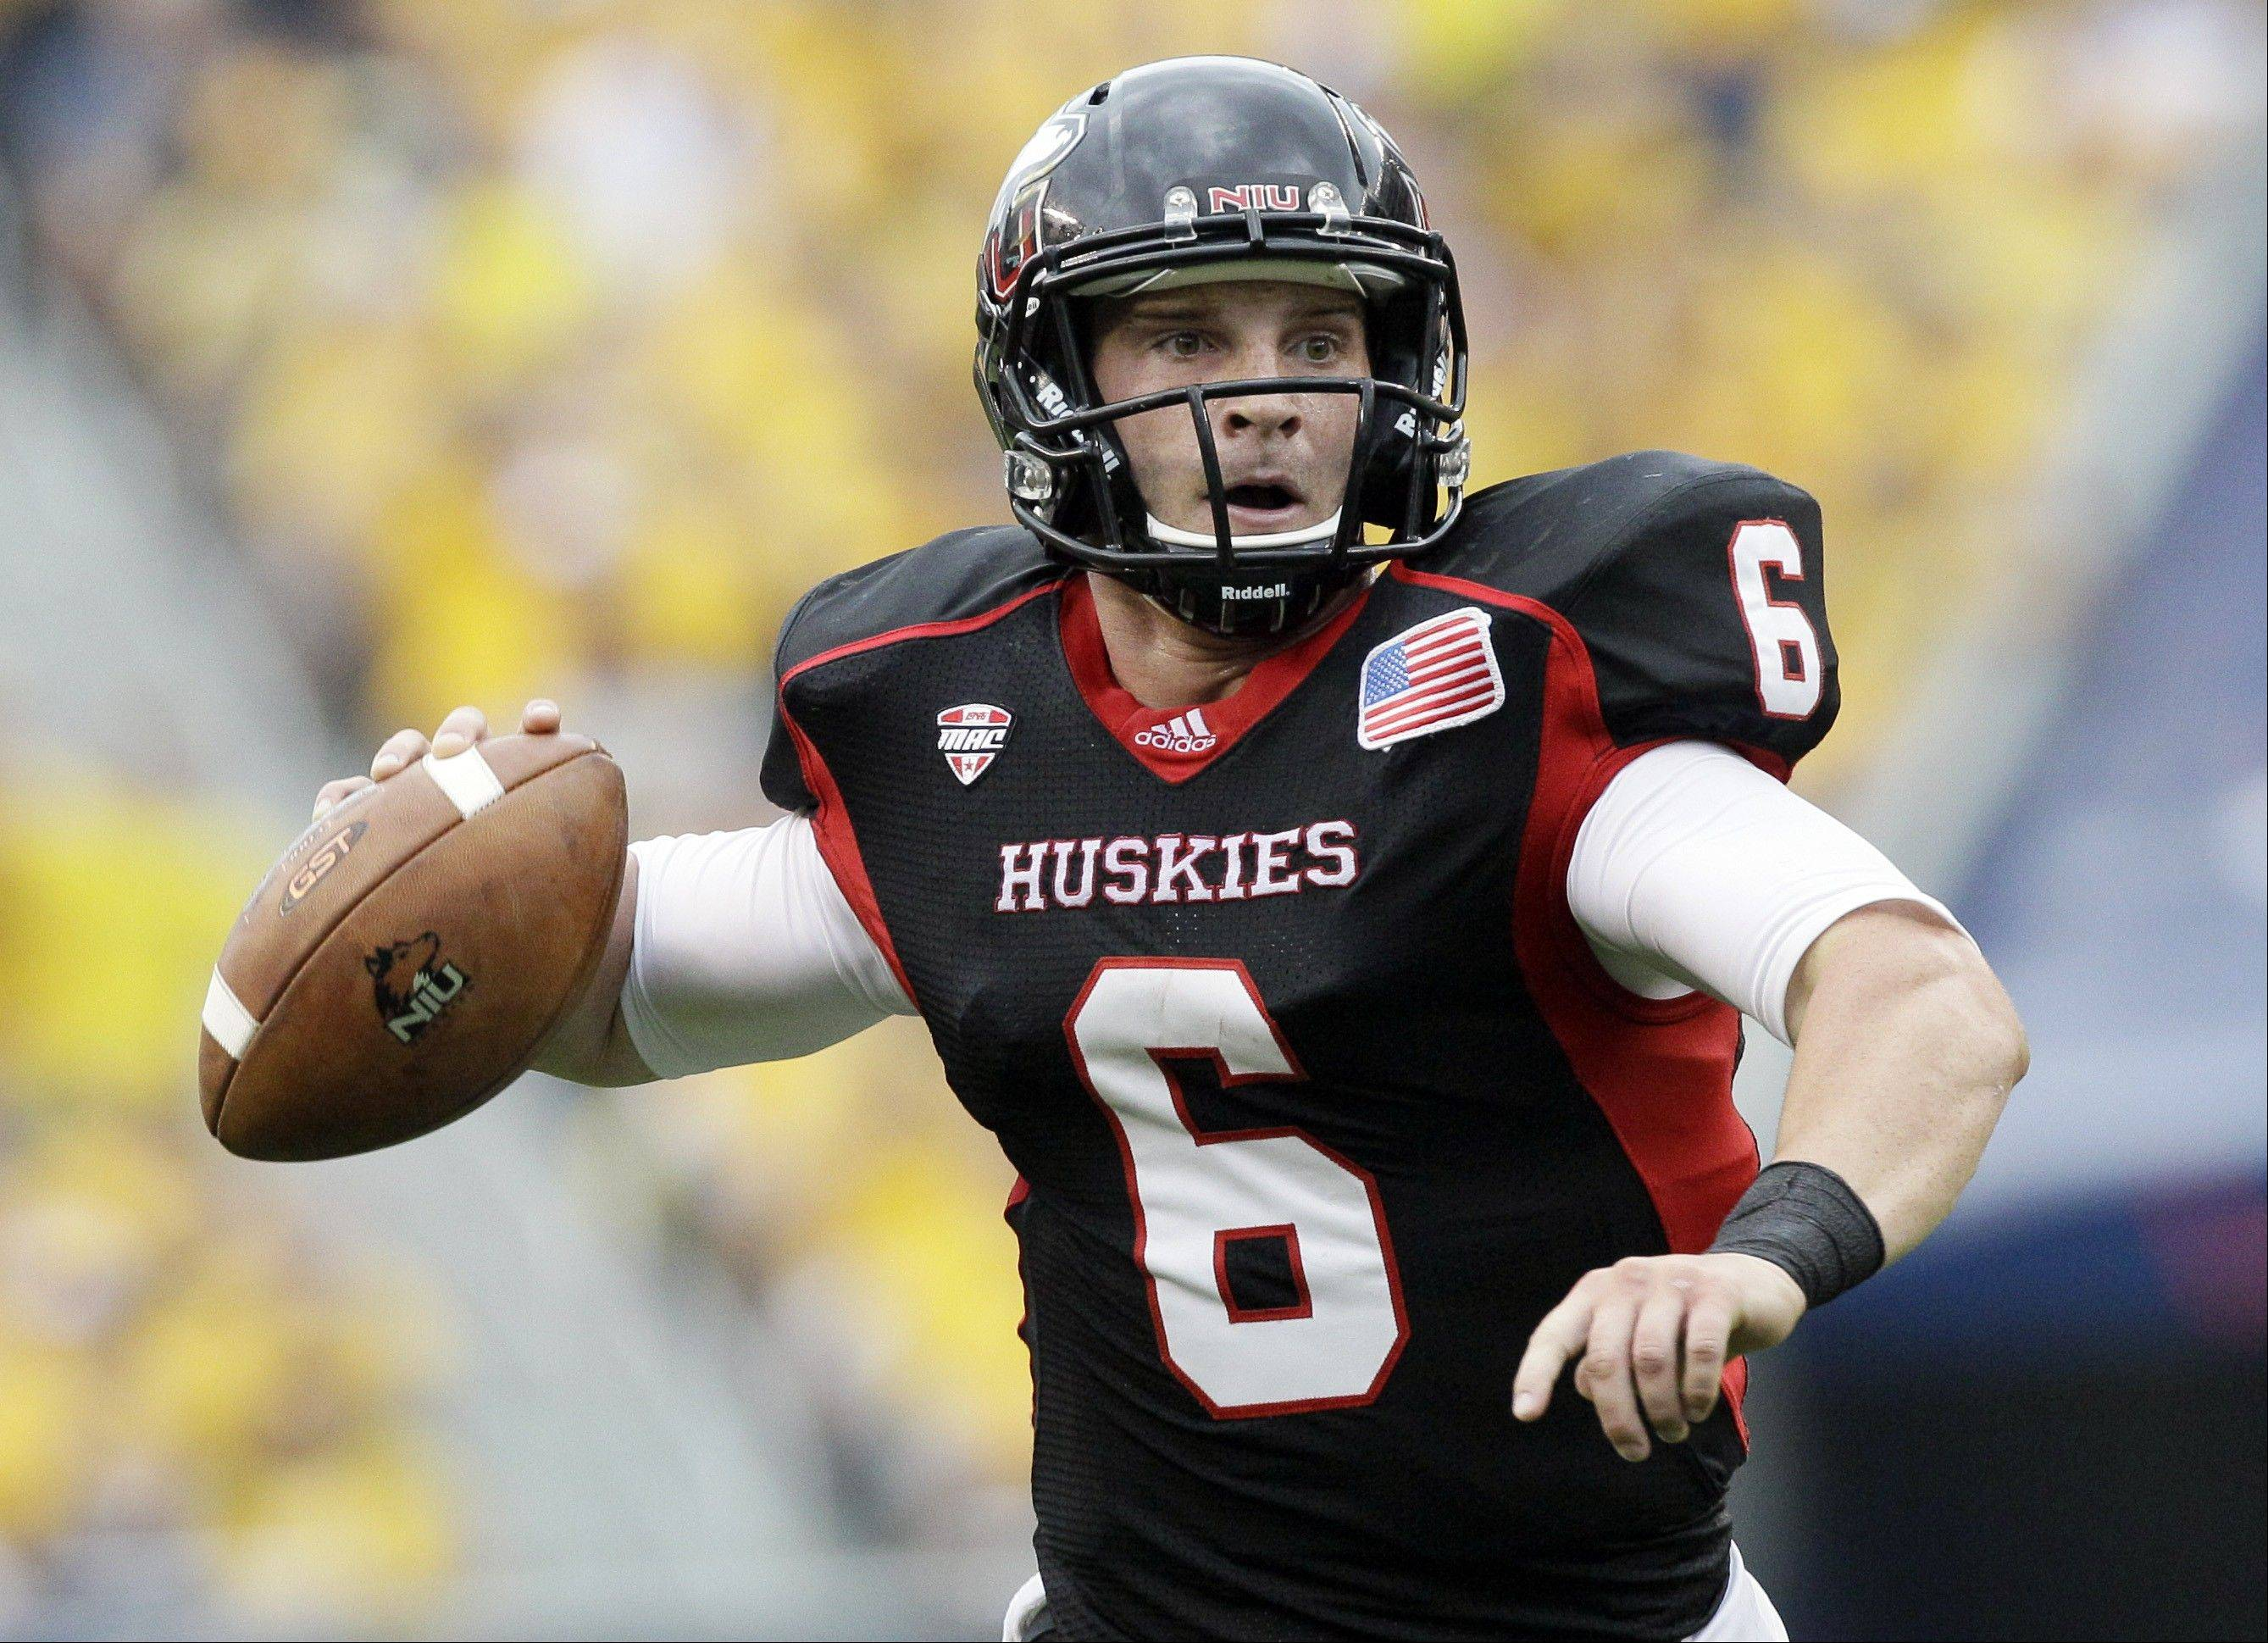 Northern Illinois quarterback Jordan Lynch looks to a pass against Iowa at Soldier Field. Since rejoining the MAC in 1997 the Huskies have dropped 11 of 15 to Toledo, including eight straight from '97 to '04.